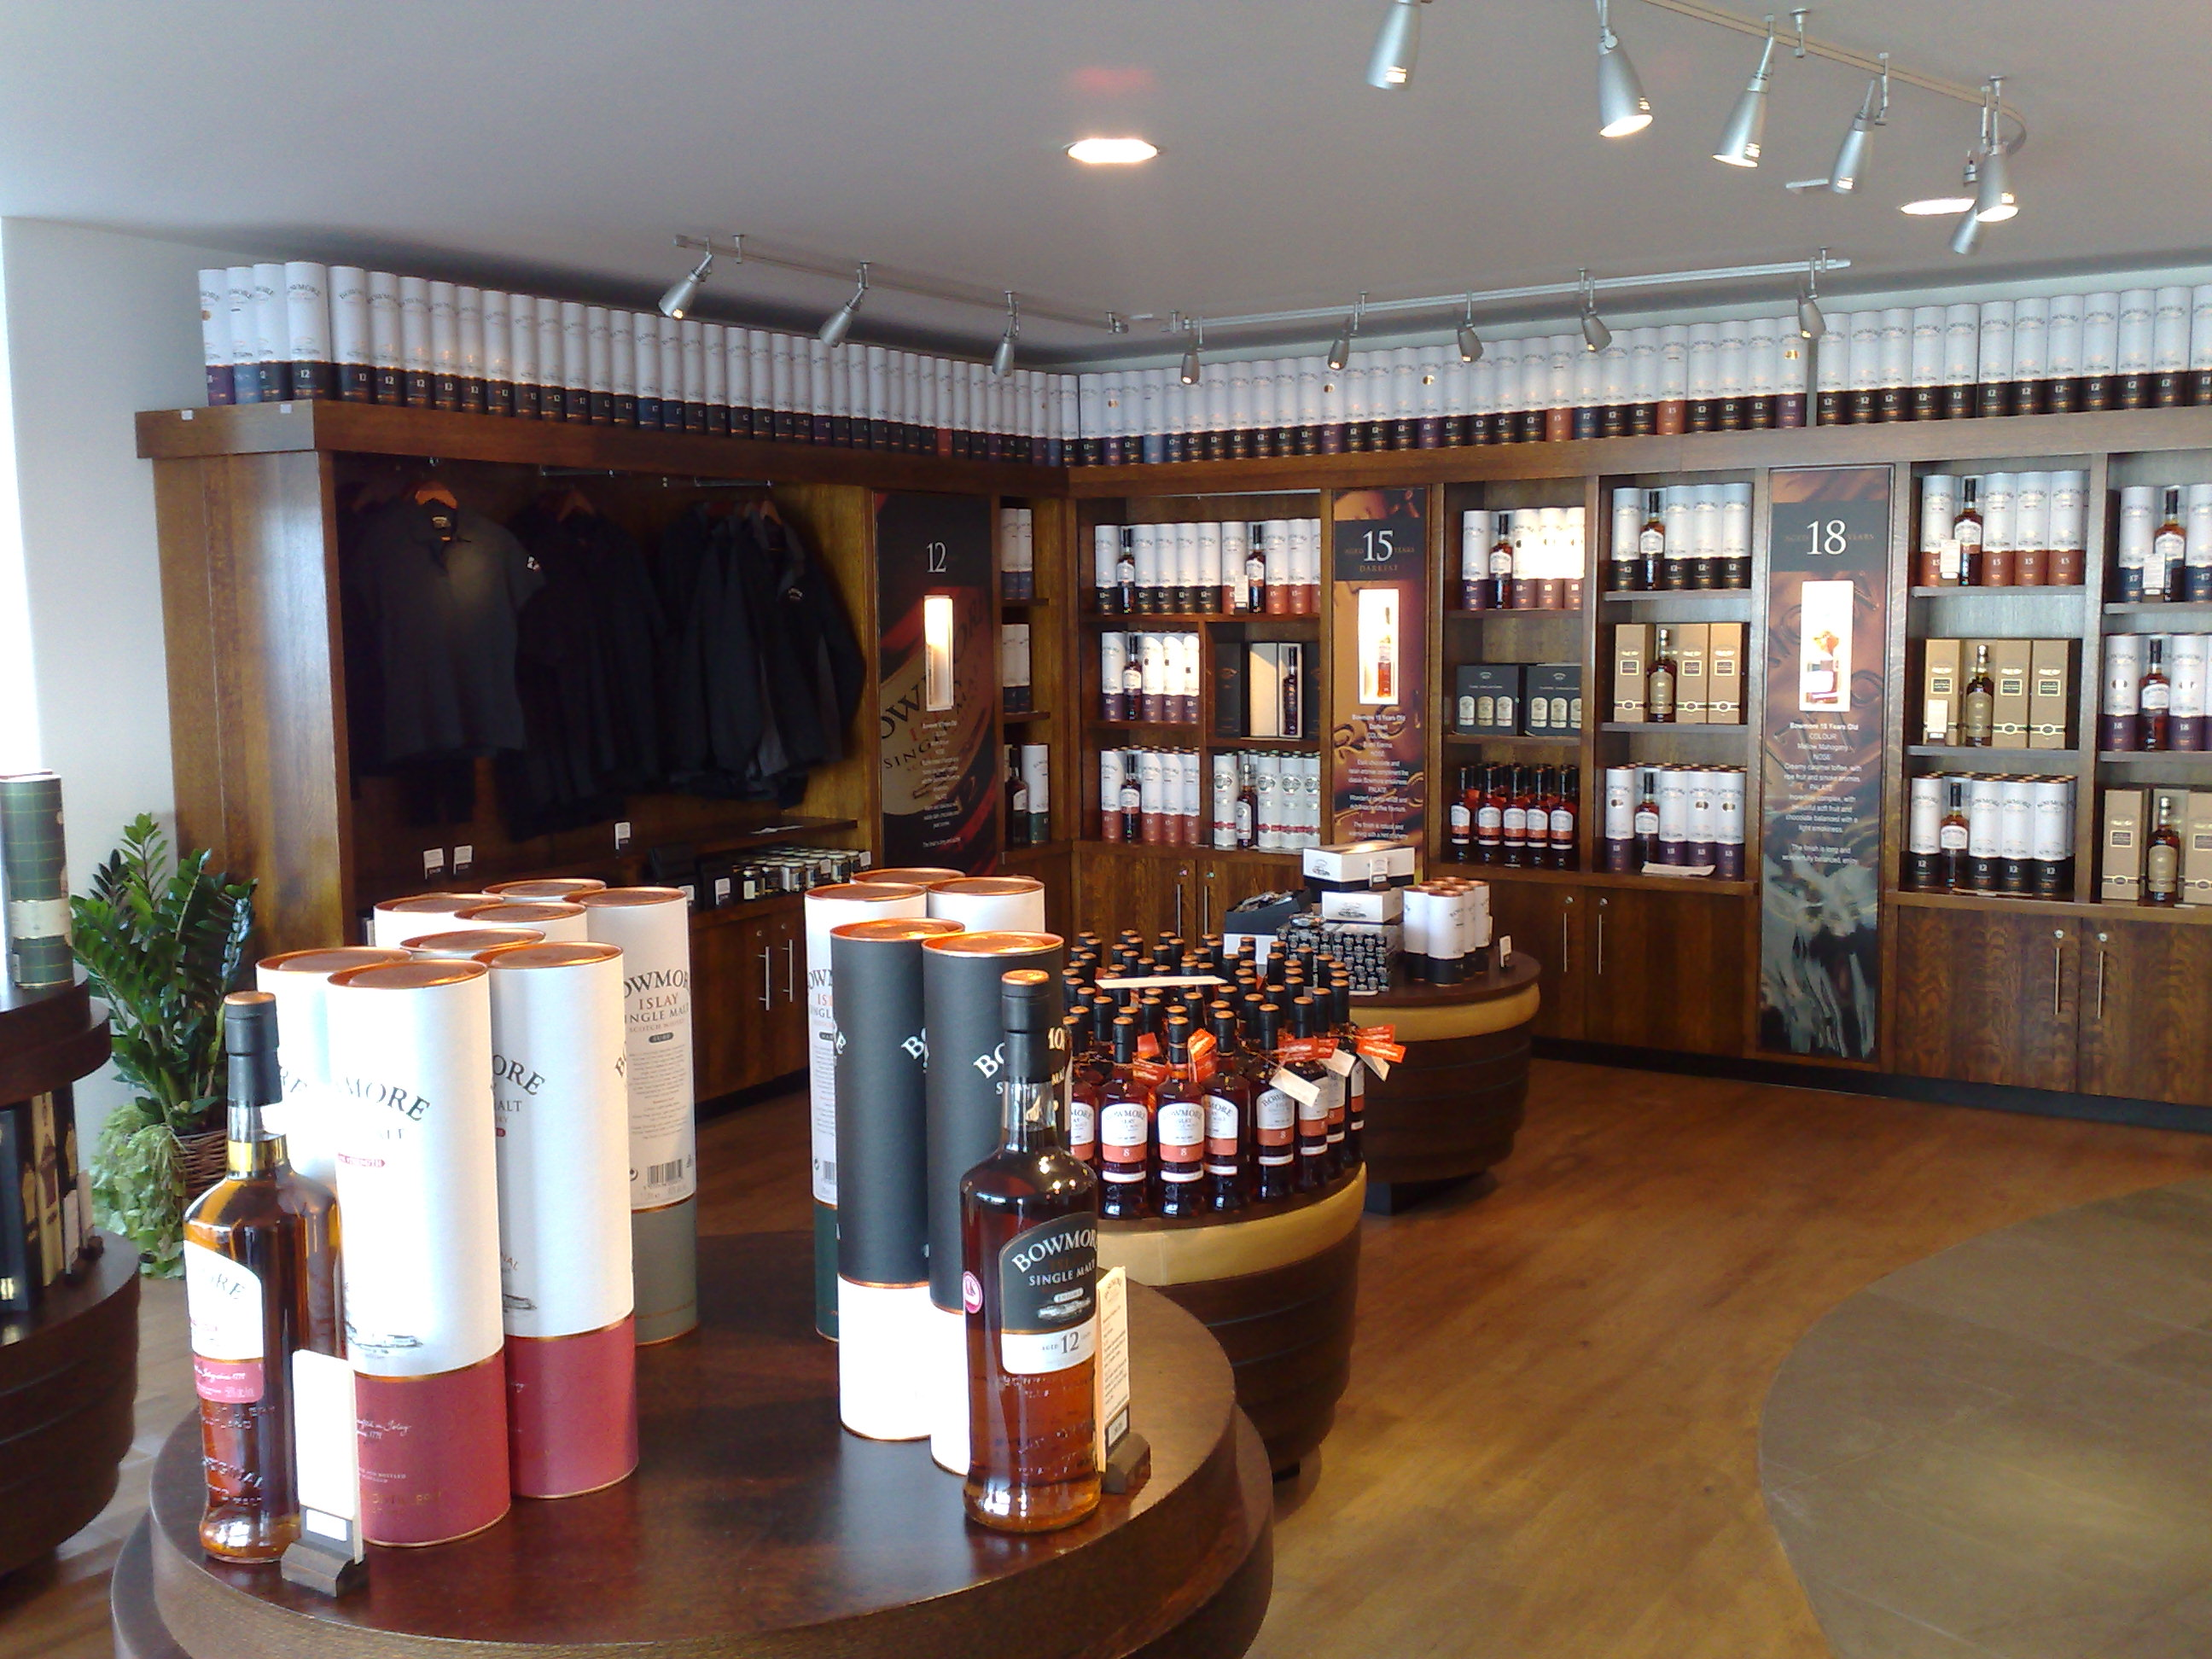 Bowmore shop at Bowmore distillery